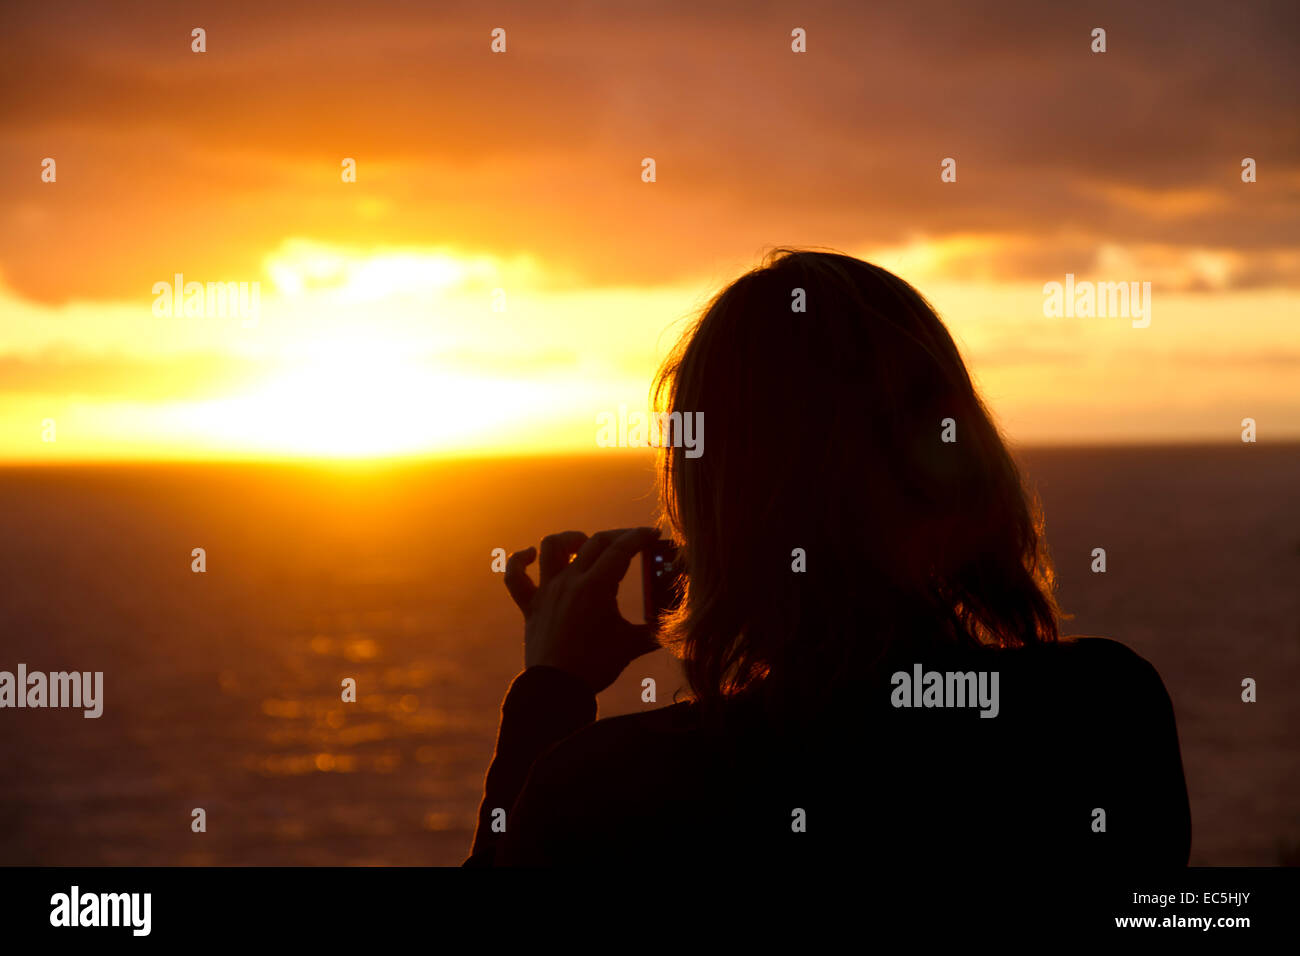 Woman photographed sunset at sea - Stock Image